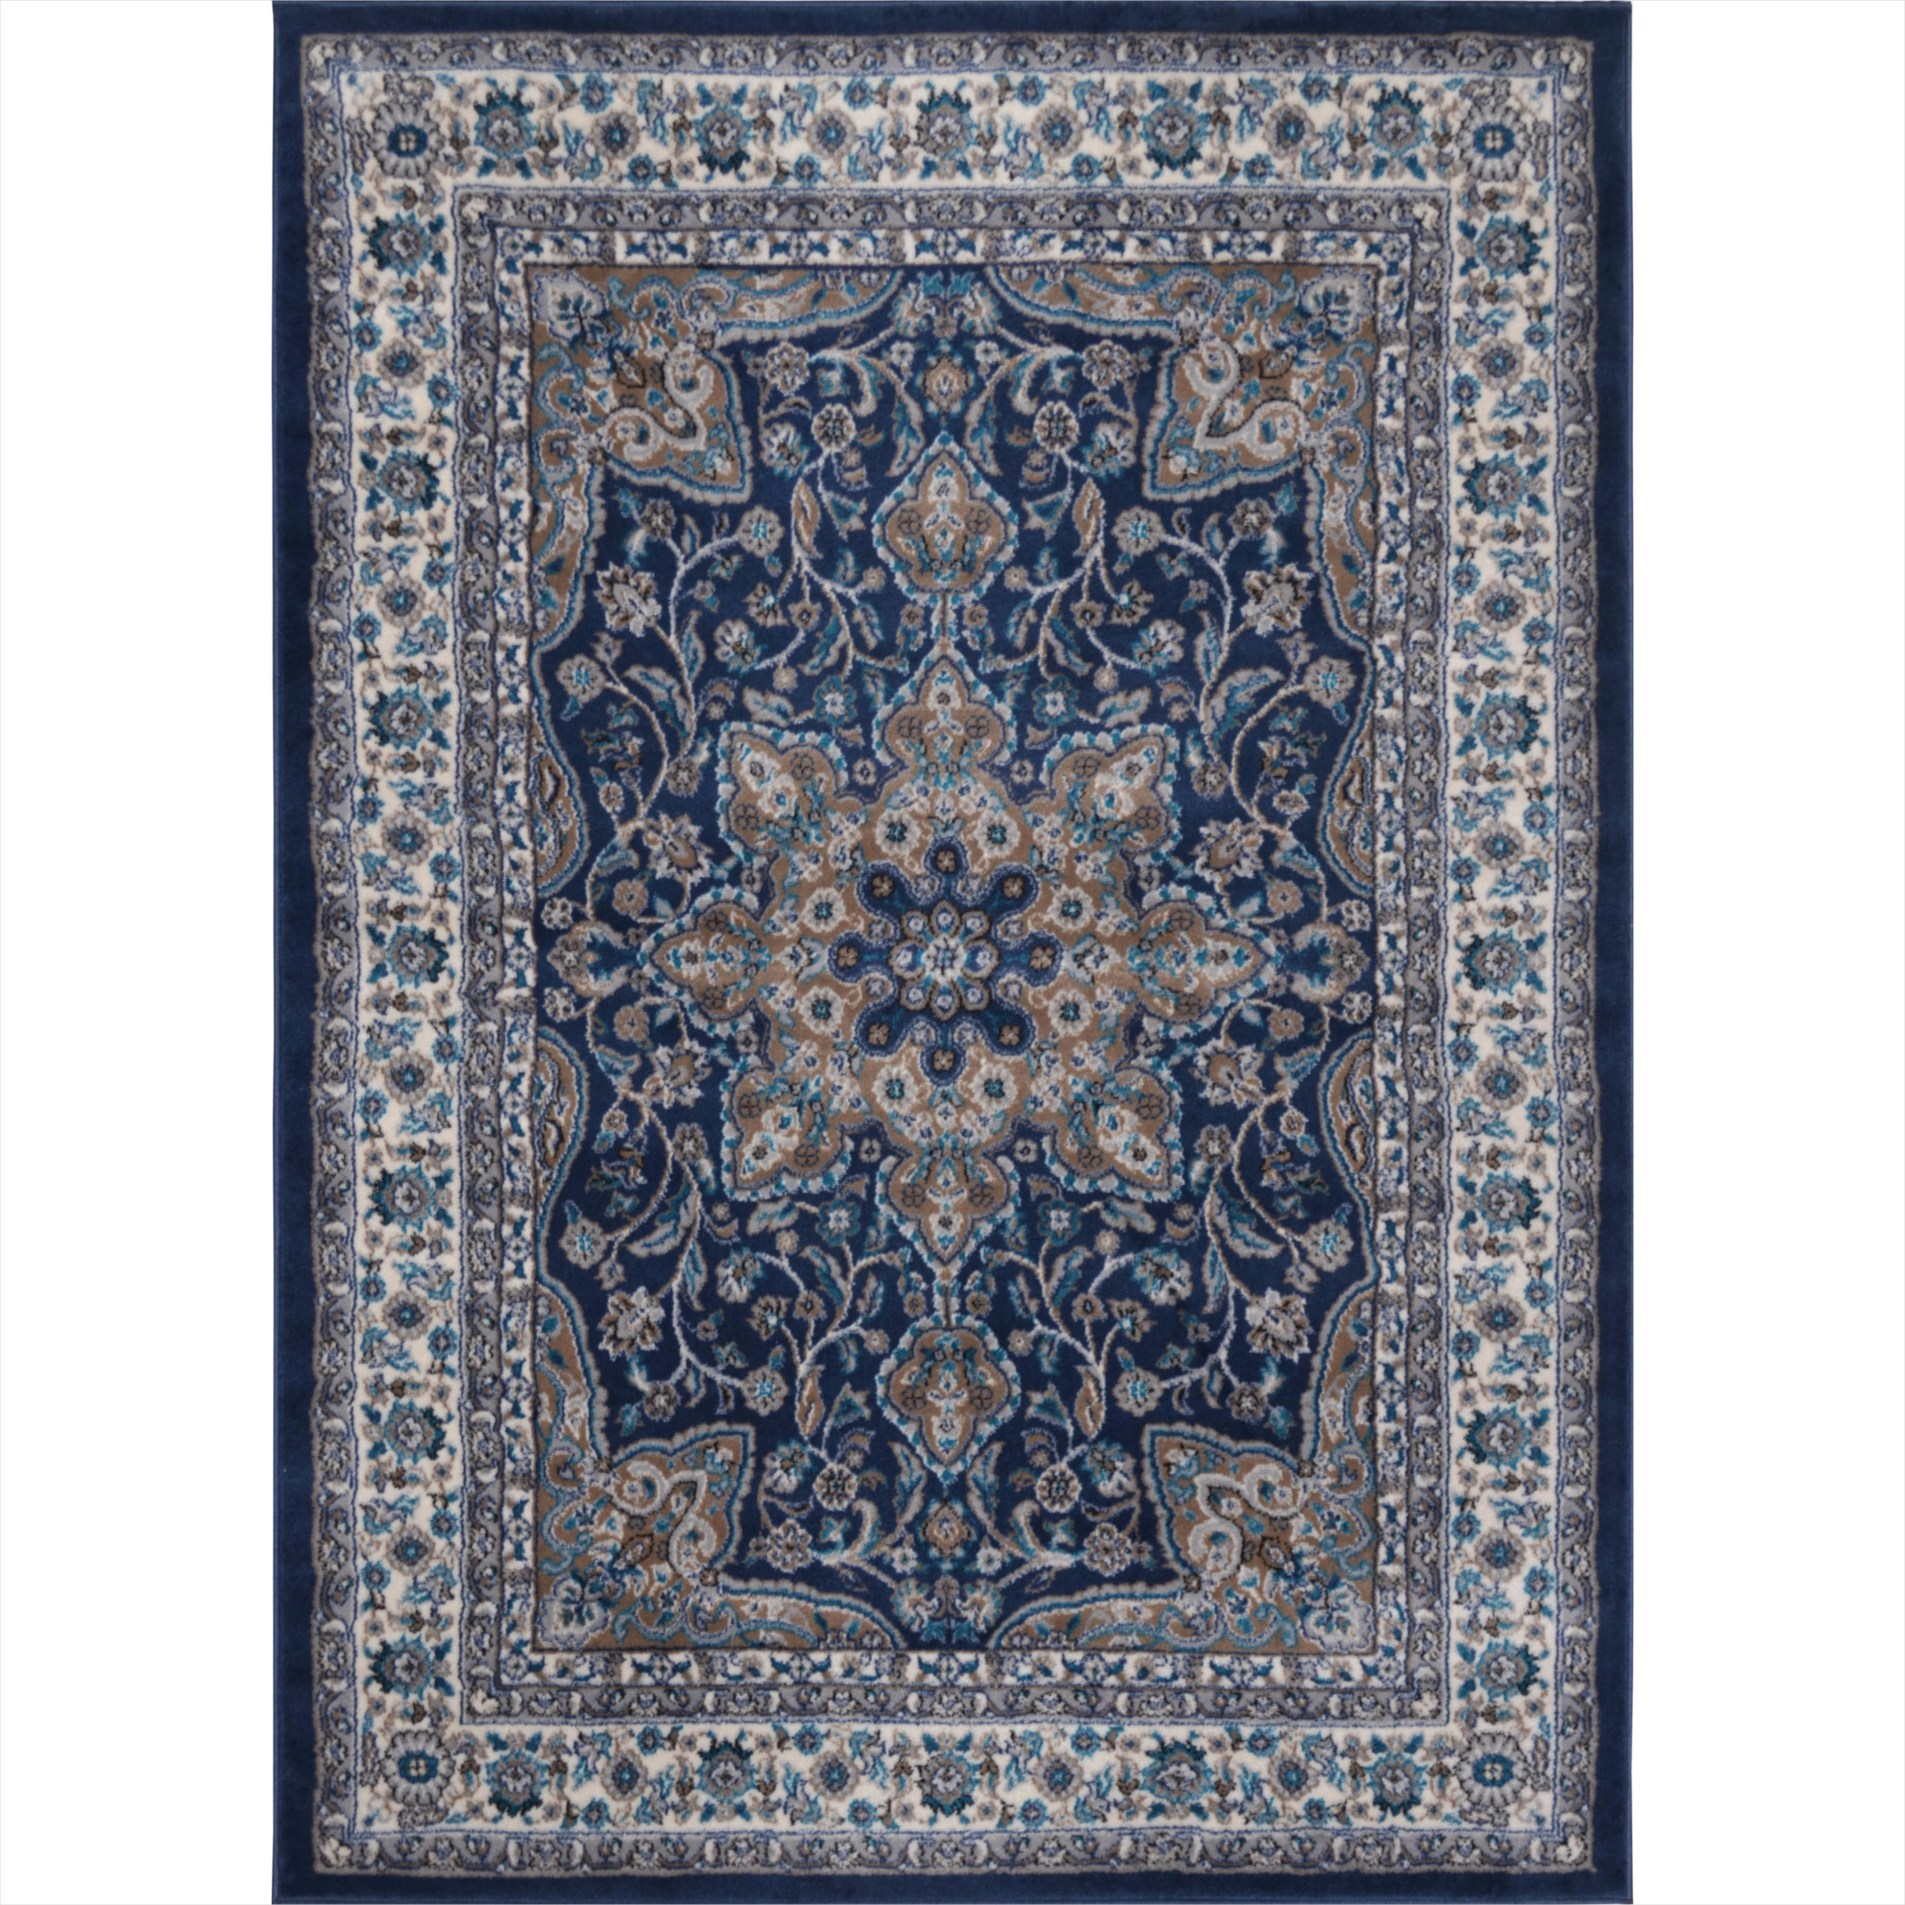 43 Beautiful Living Room area Rugs 37 Decor Beautiful Flooring Decor Ideas Using Navy Blue area Rug In Navy Blue and Tan area Rug for 7